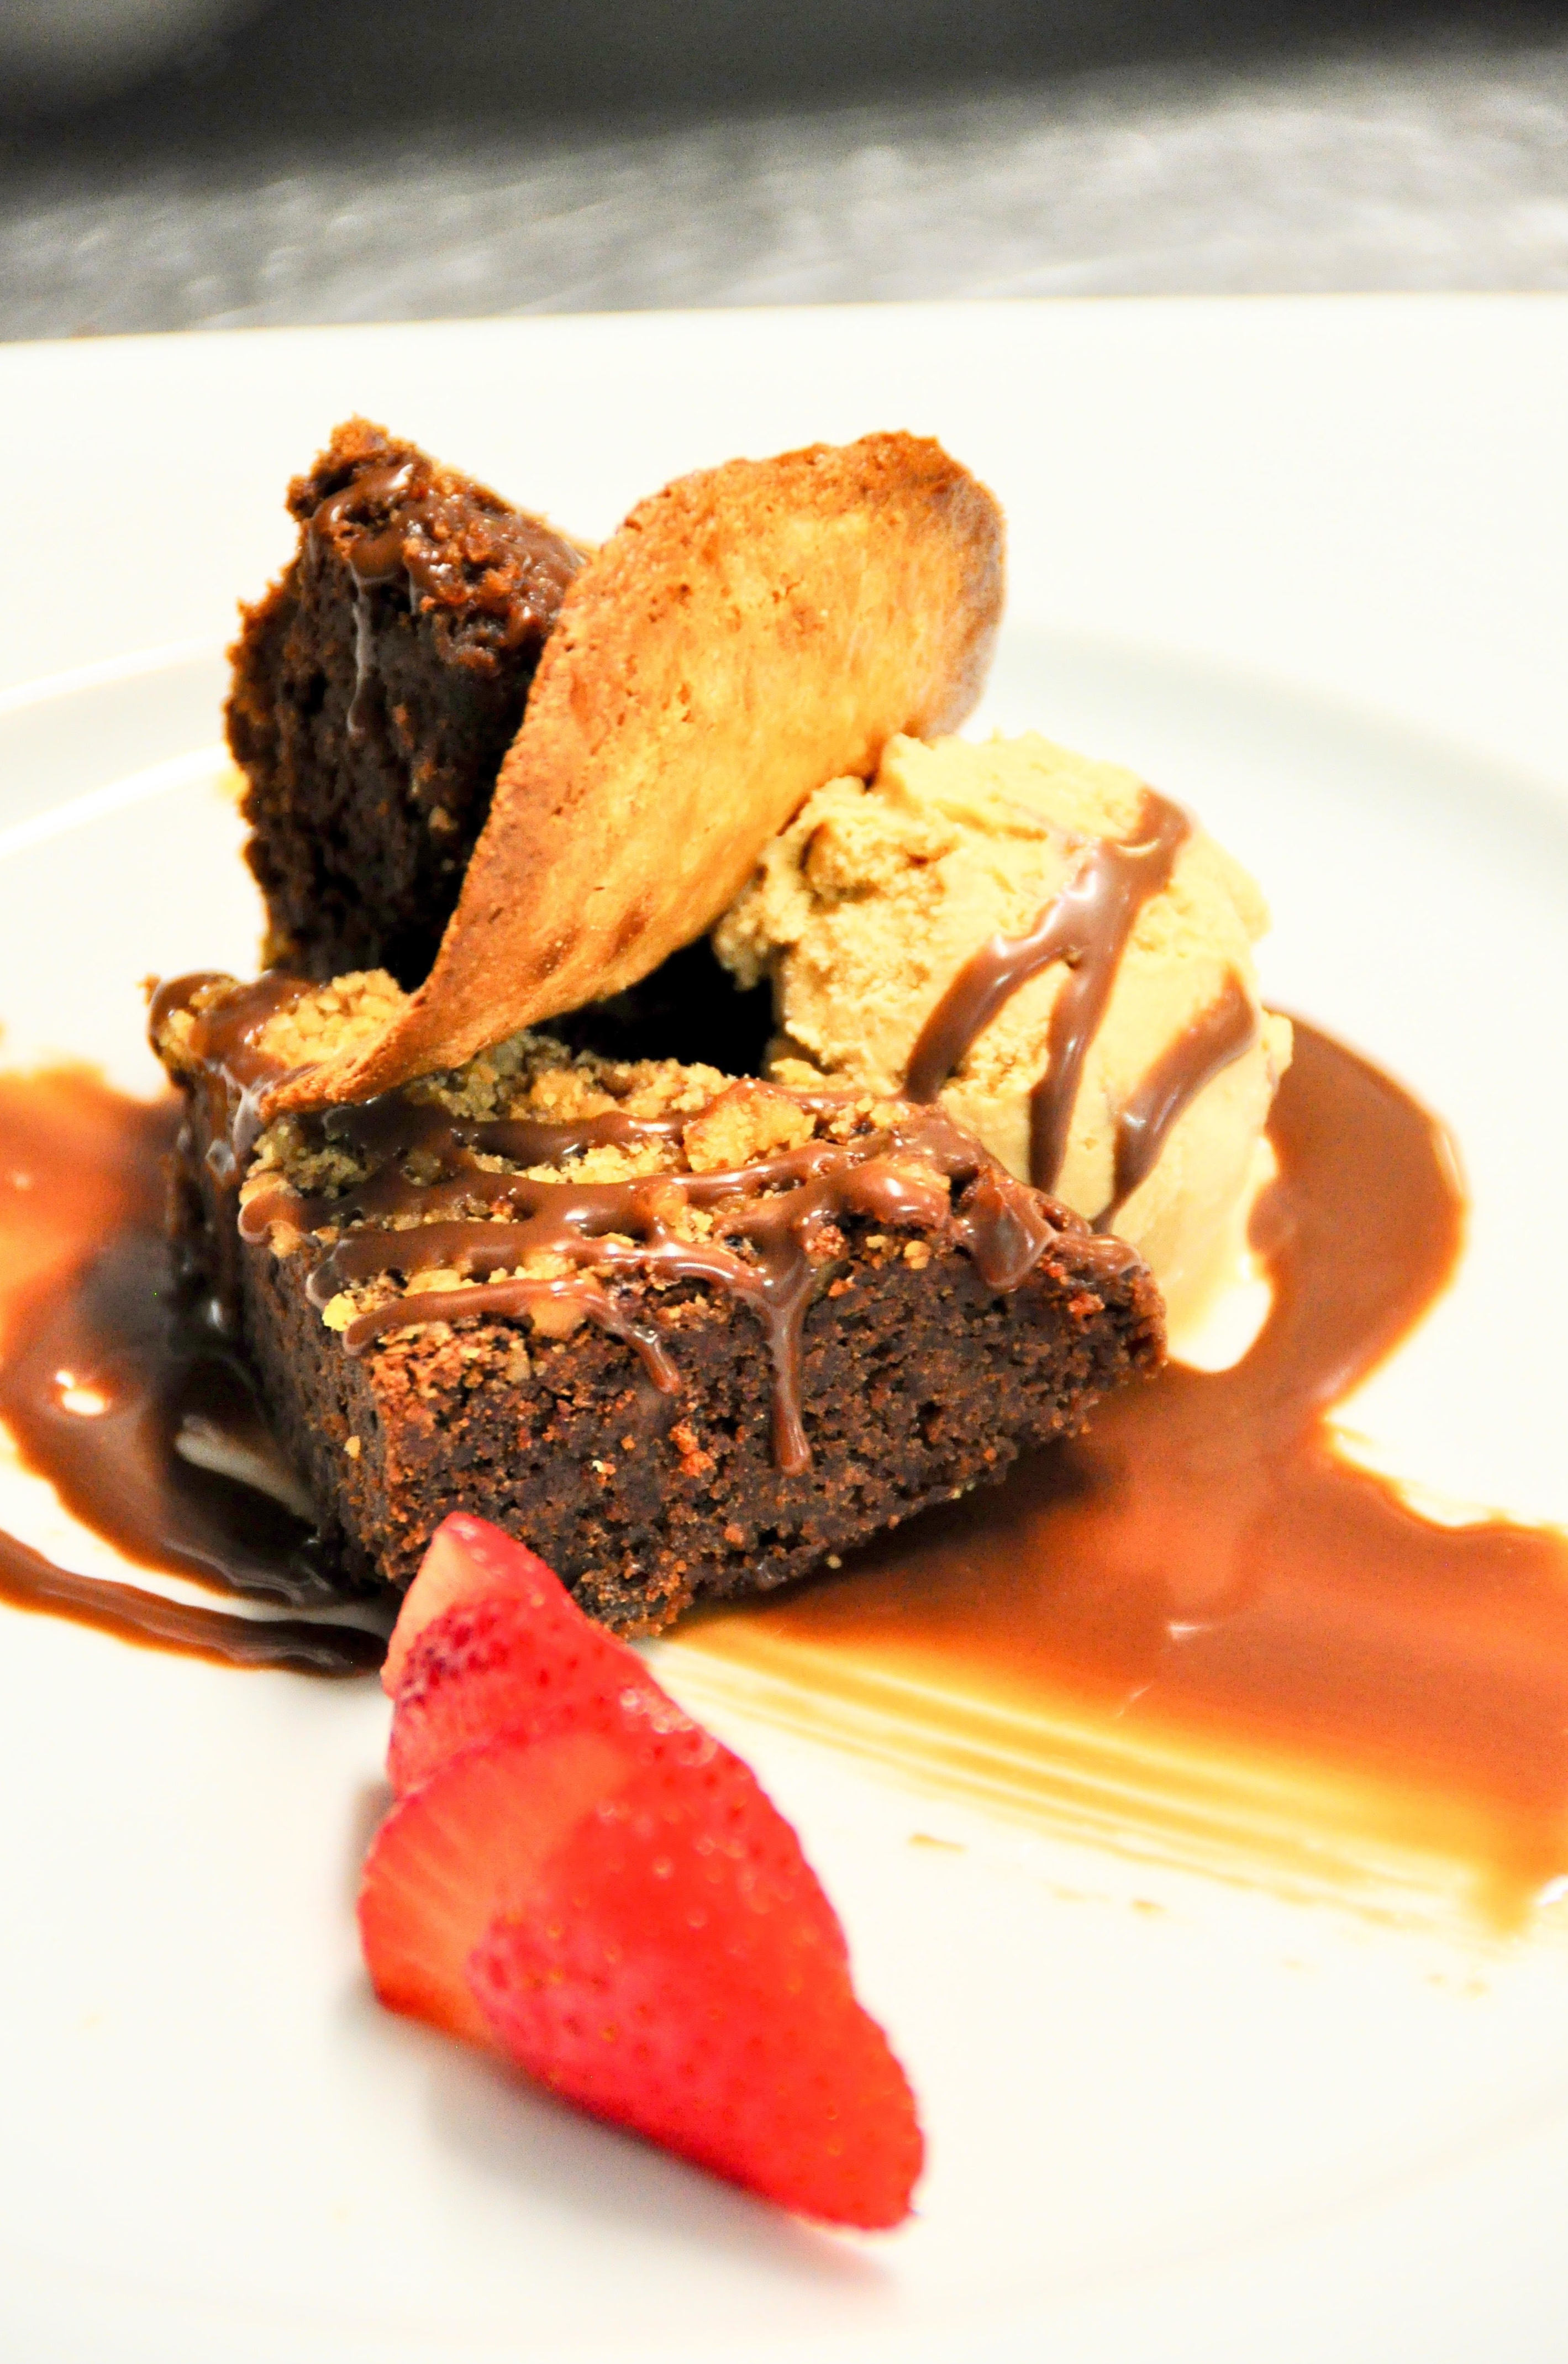 Brownie de chocolate con nueces y helado de dulce de leche.